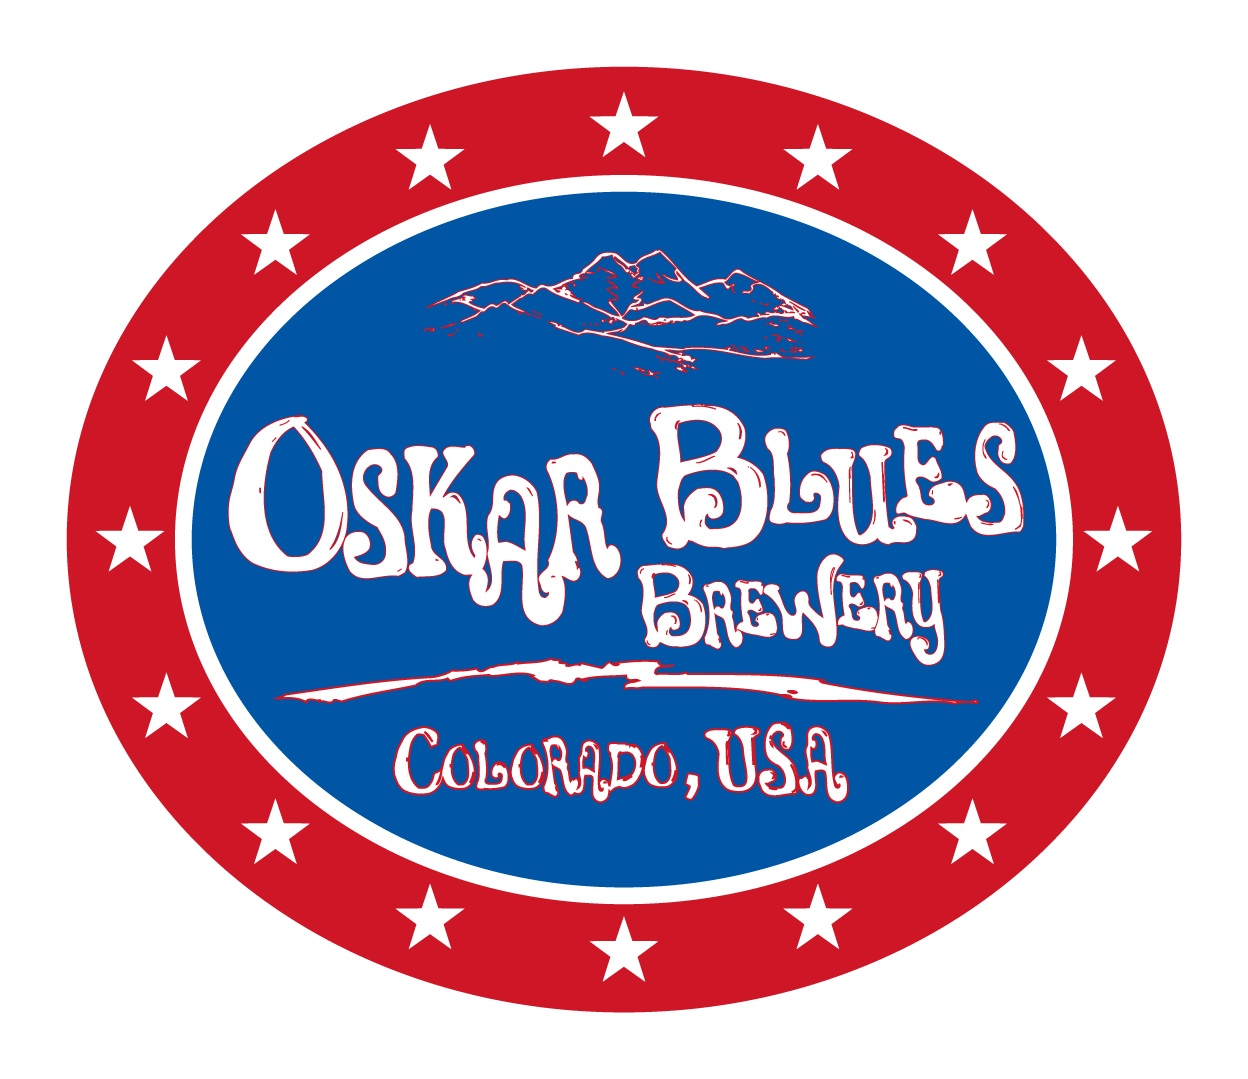 http://thewoodwardspine.files.wordpress.com/2013/05/oskar-blues-logo.jpg